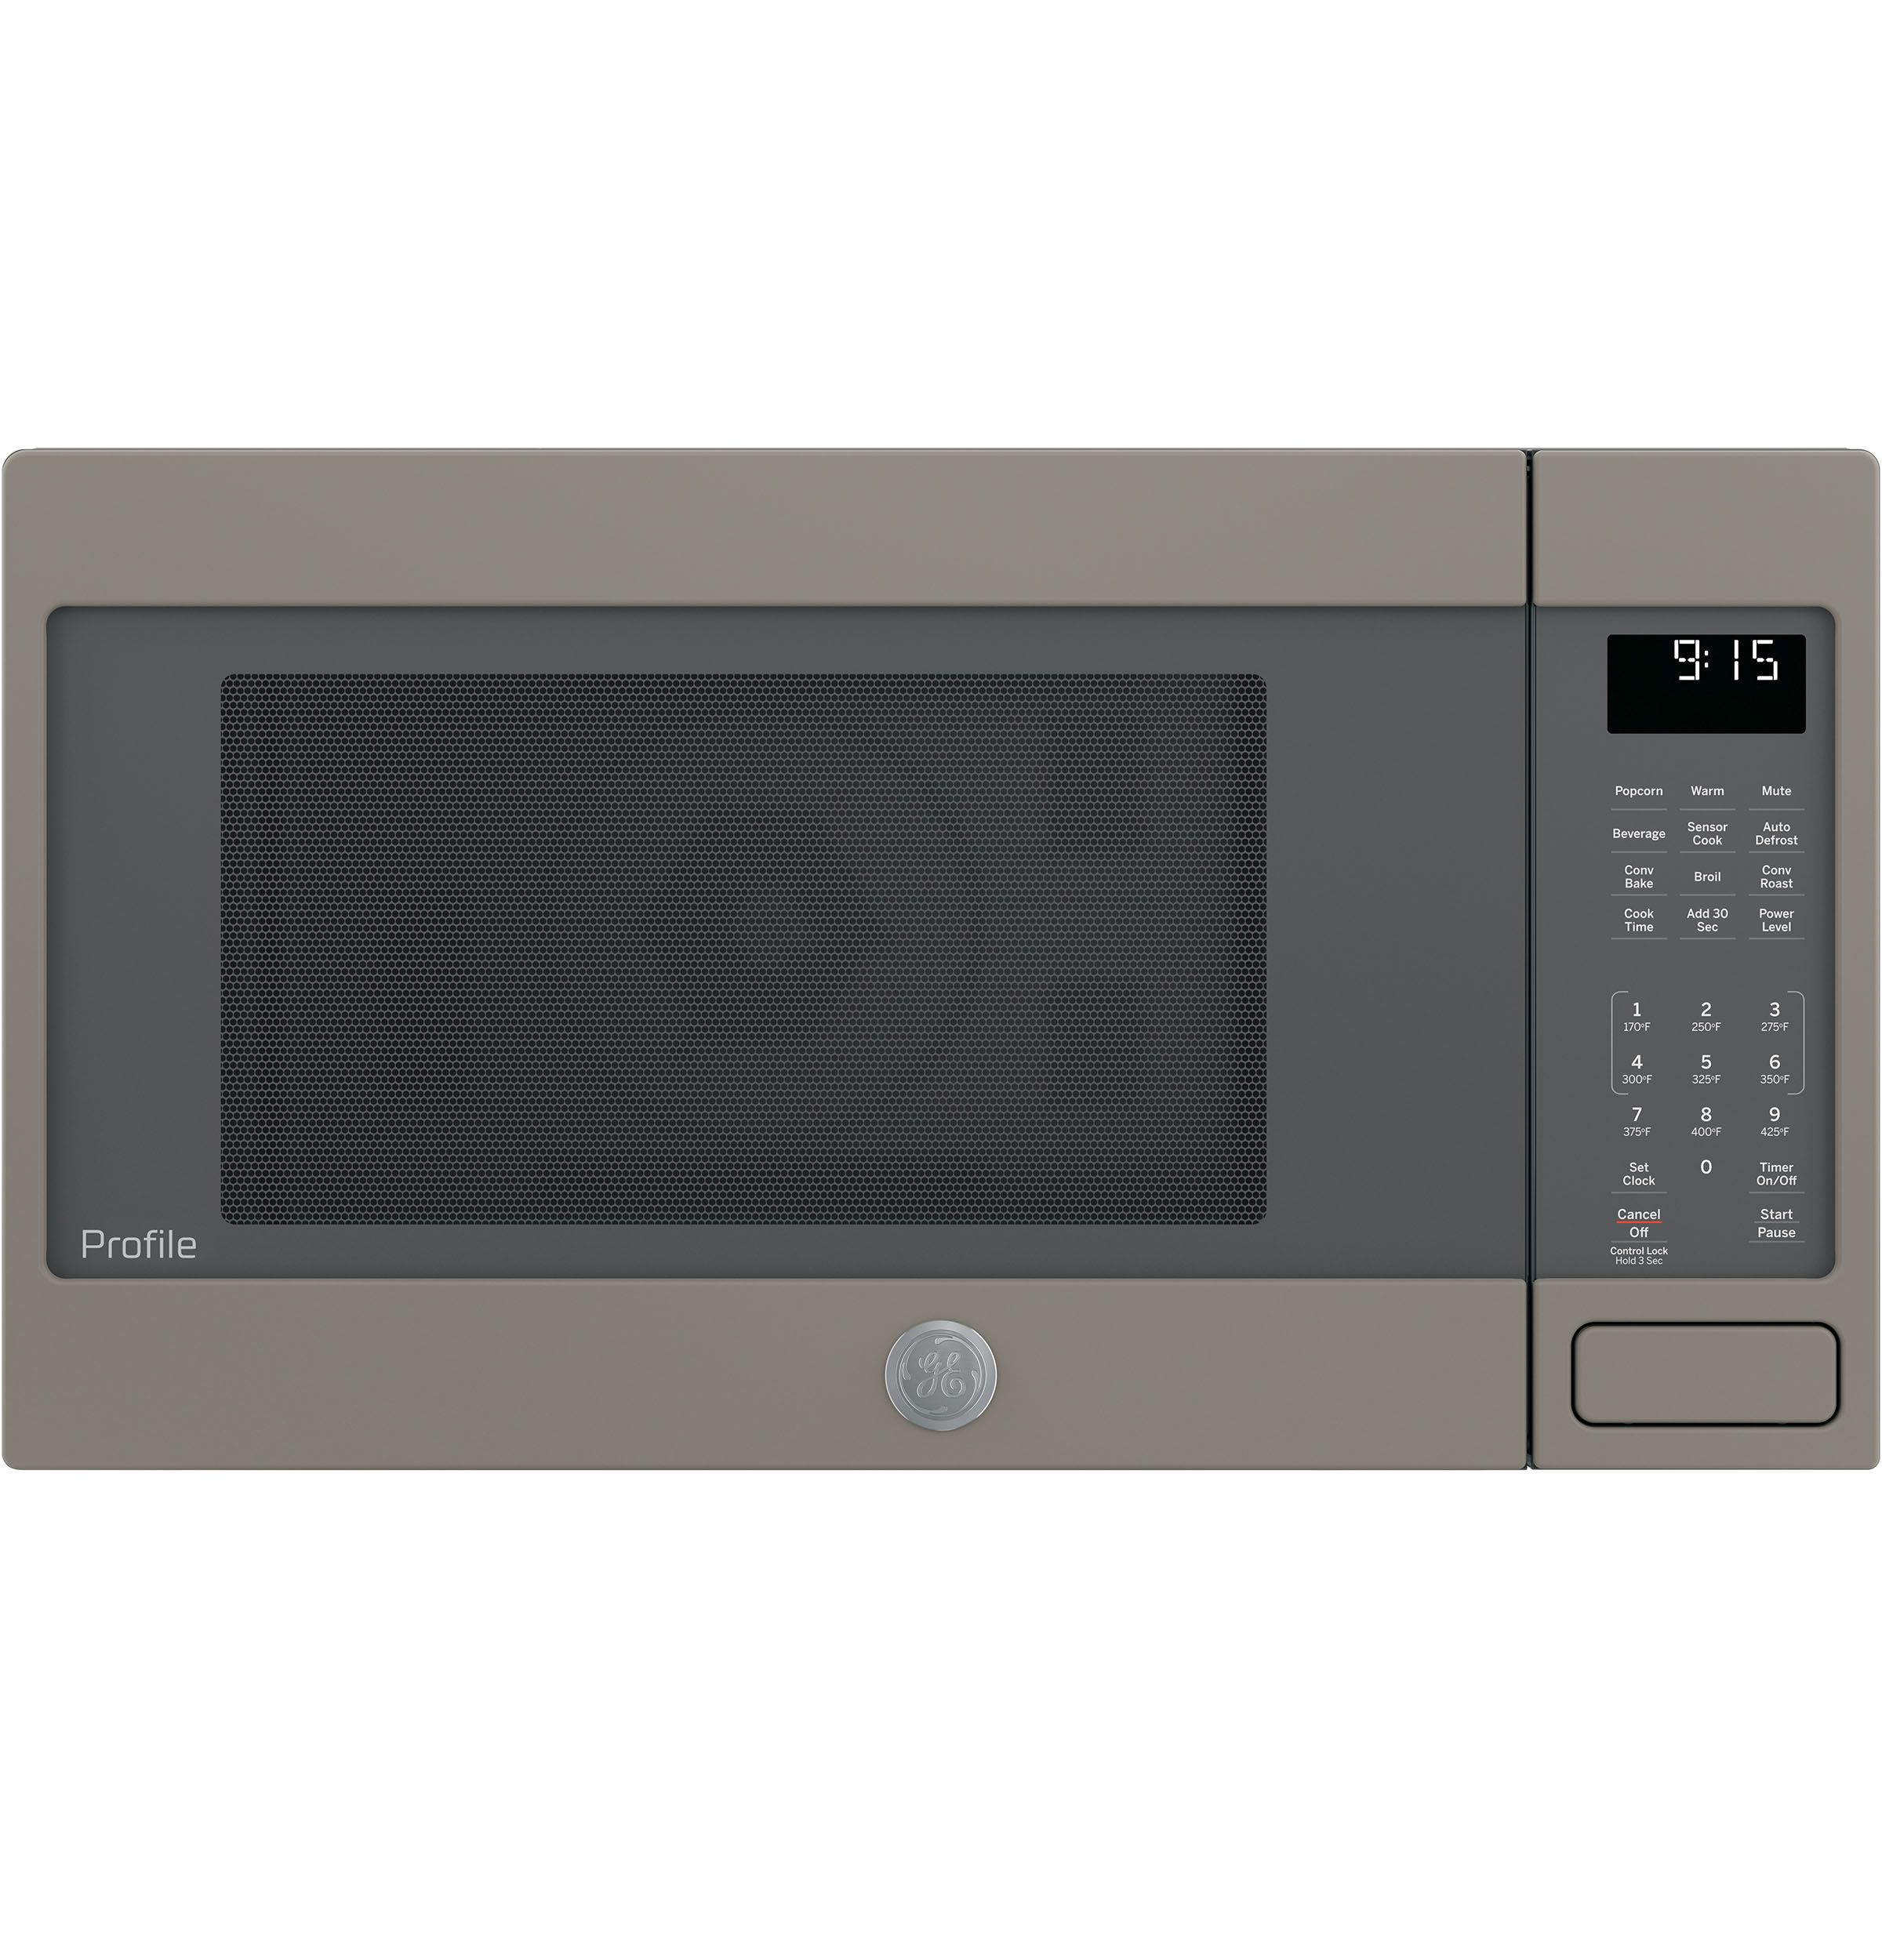 Model: PEB9159EJES | GE Profile GE Profile™ 1.5 Cu. Ft. Countertop Convection/Microwave Oven